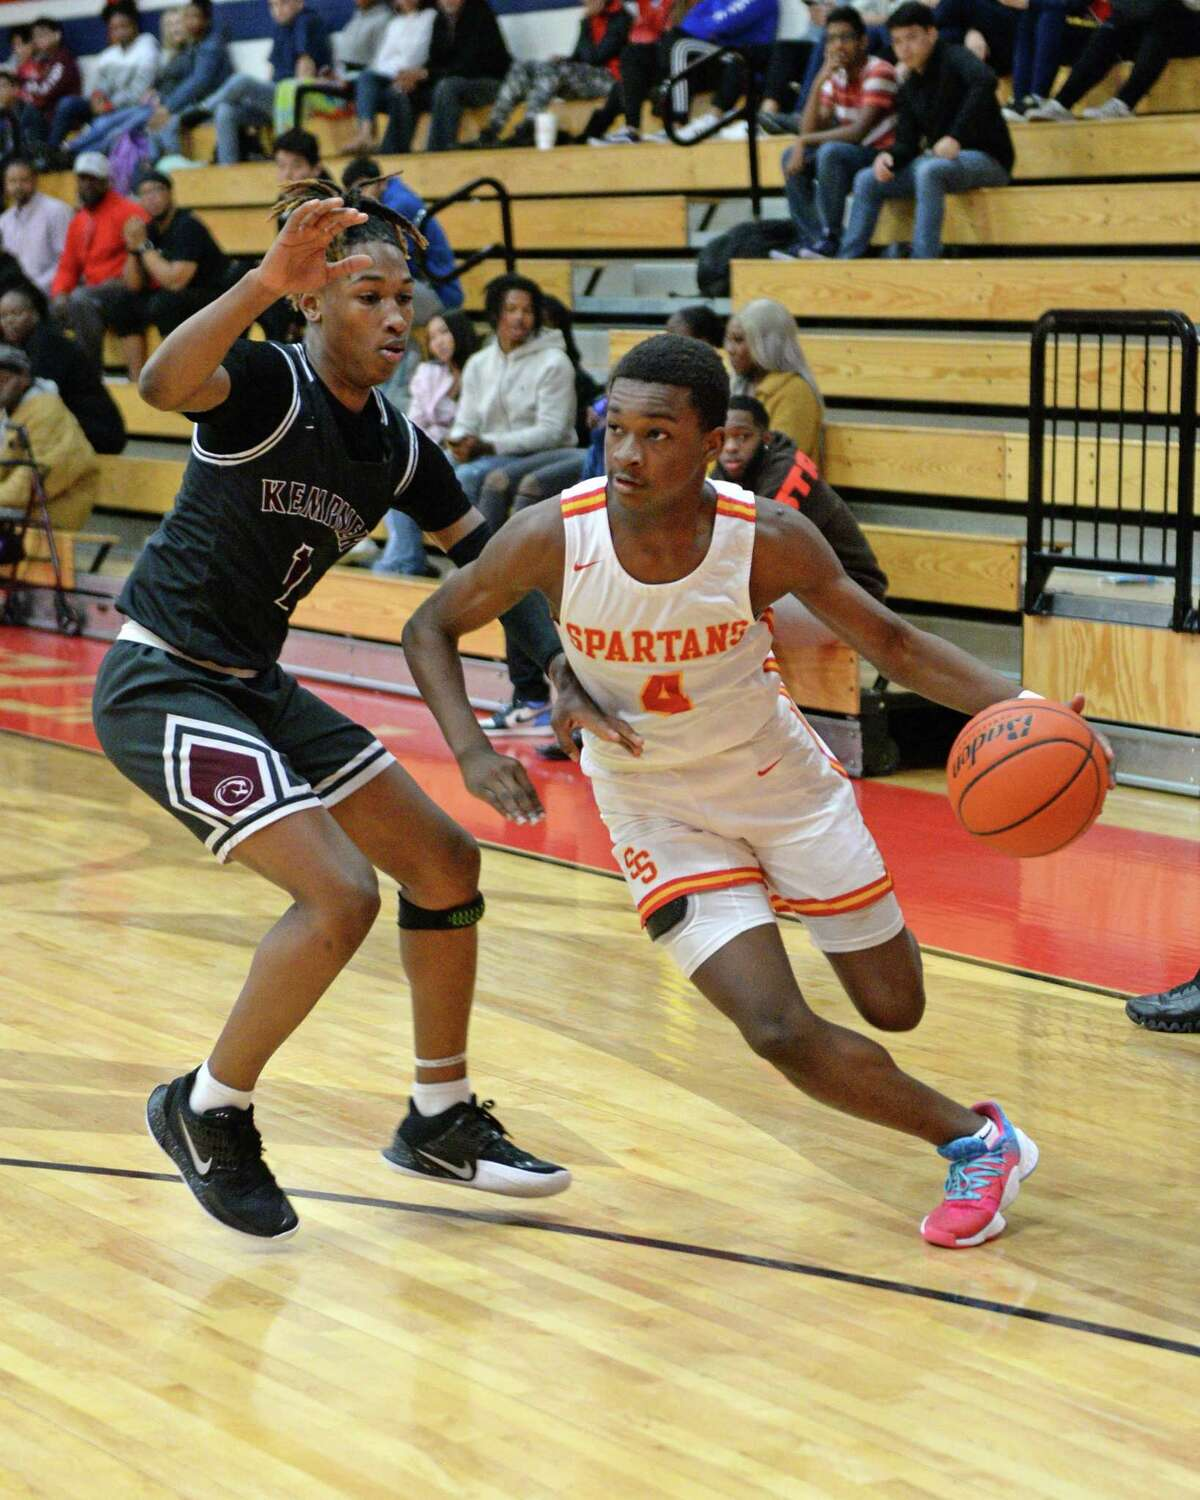 Daylan Presley (4) of Stafford drives toward the basket during pool play of the Fort Bend ISD Invitational Boys Basketball Tournament between the Kempner Cougars and the Stafford Spartans on Thursday, December 12, 2019 at Dulles HS, Sugar Land, TX.